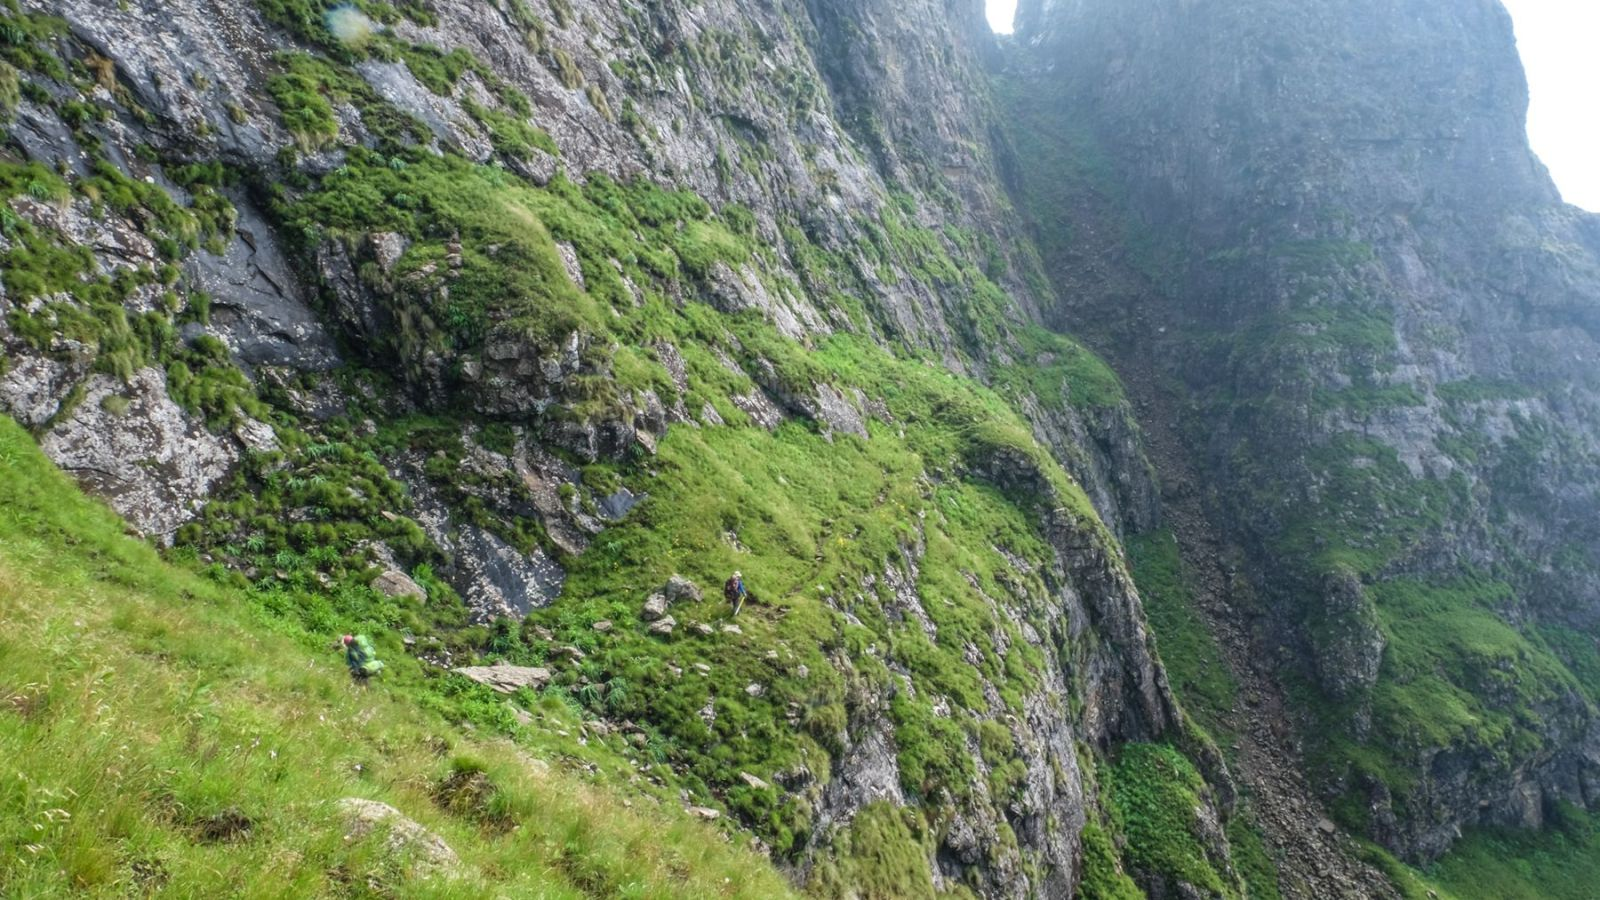 photo of a ledge with hiker on the trail in the drakensberg mountains